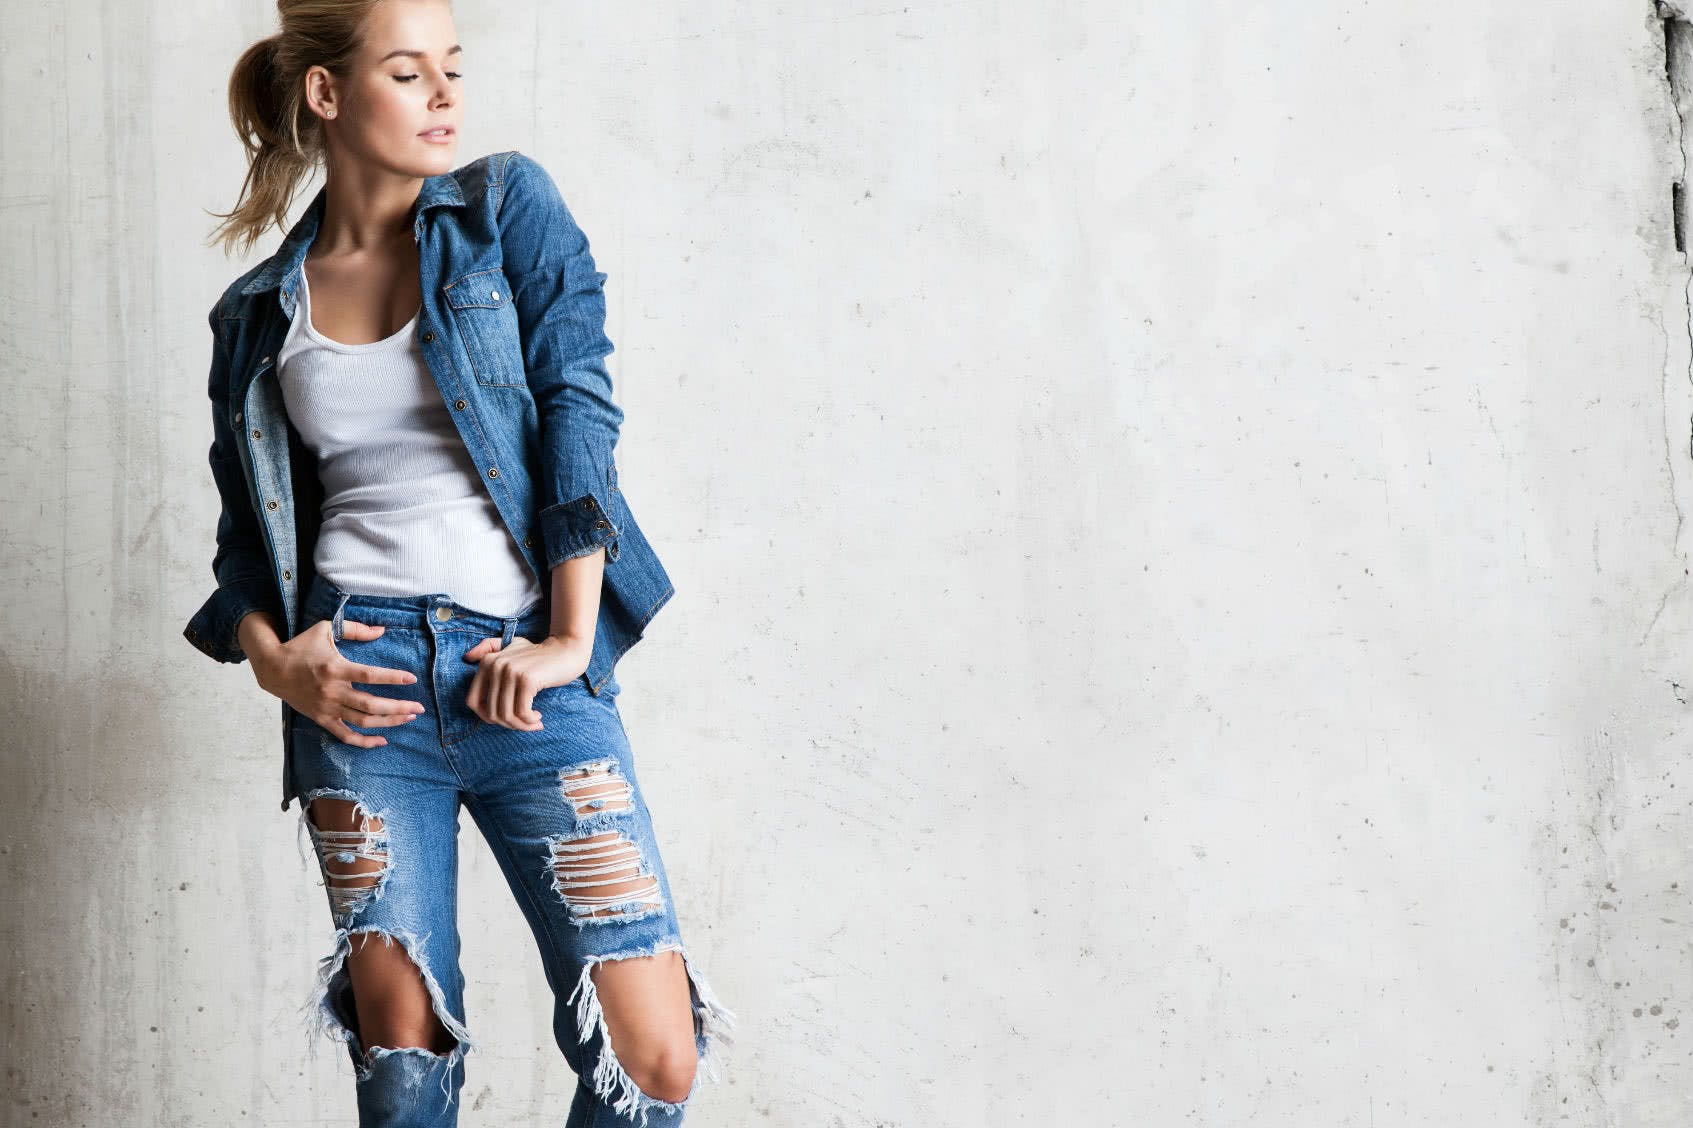 Allover Denim Look bei Frauen